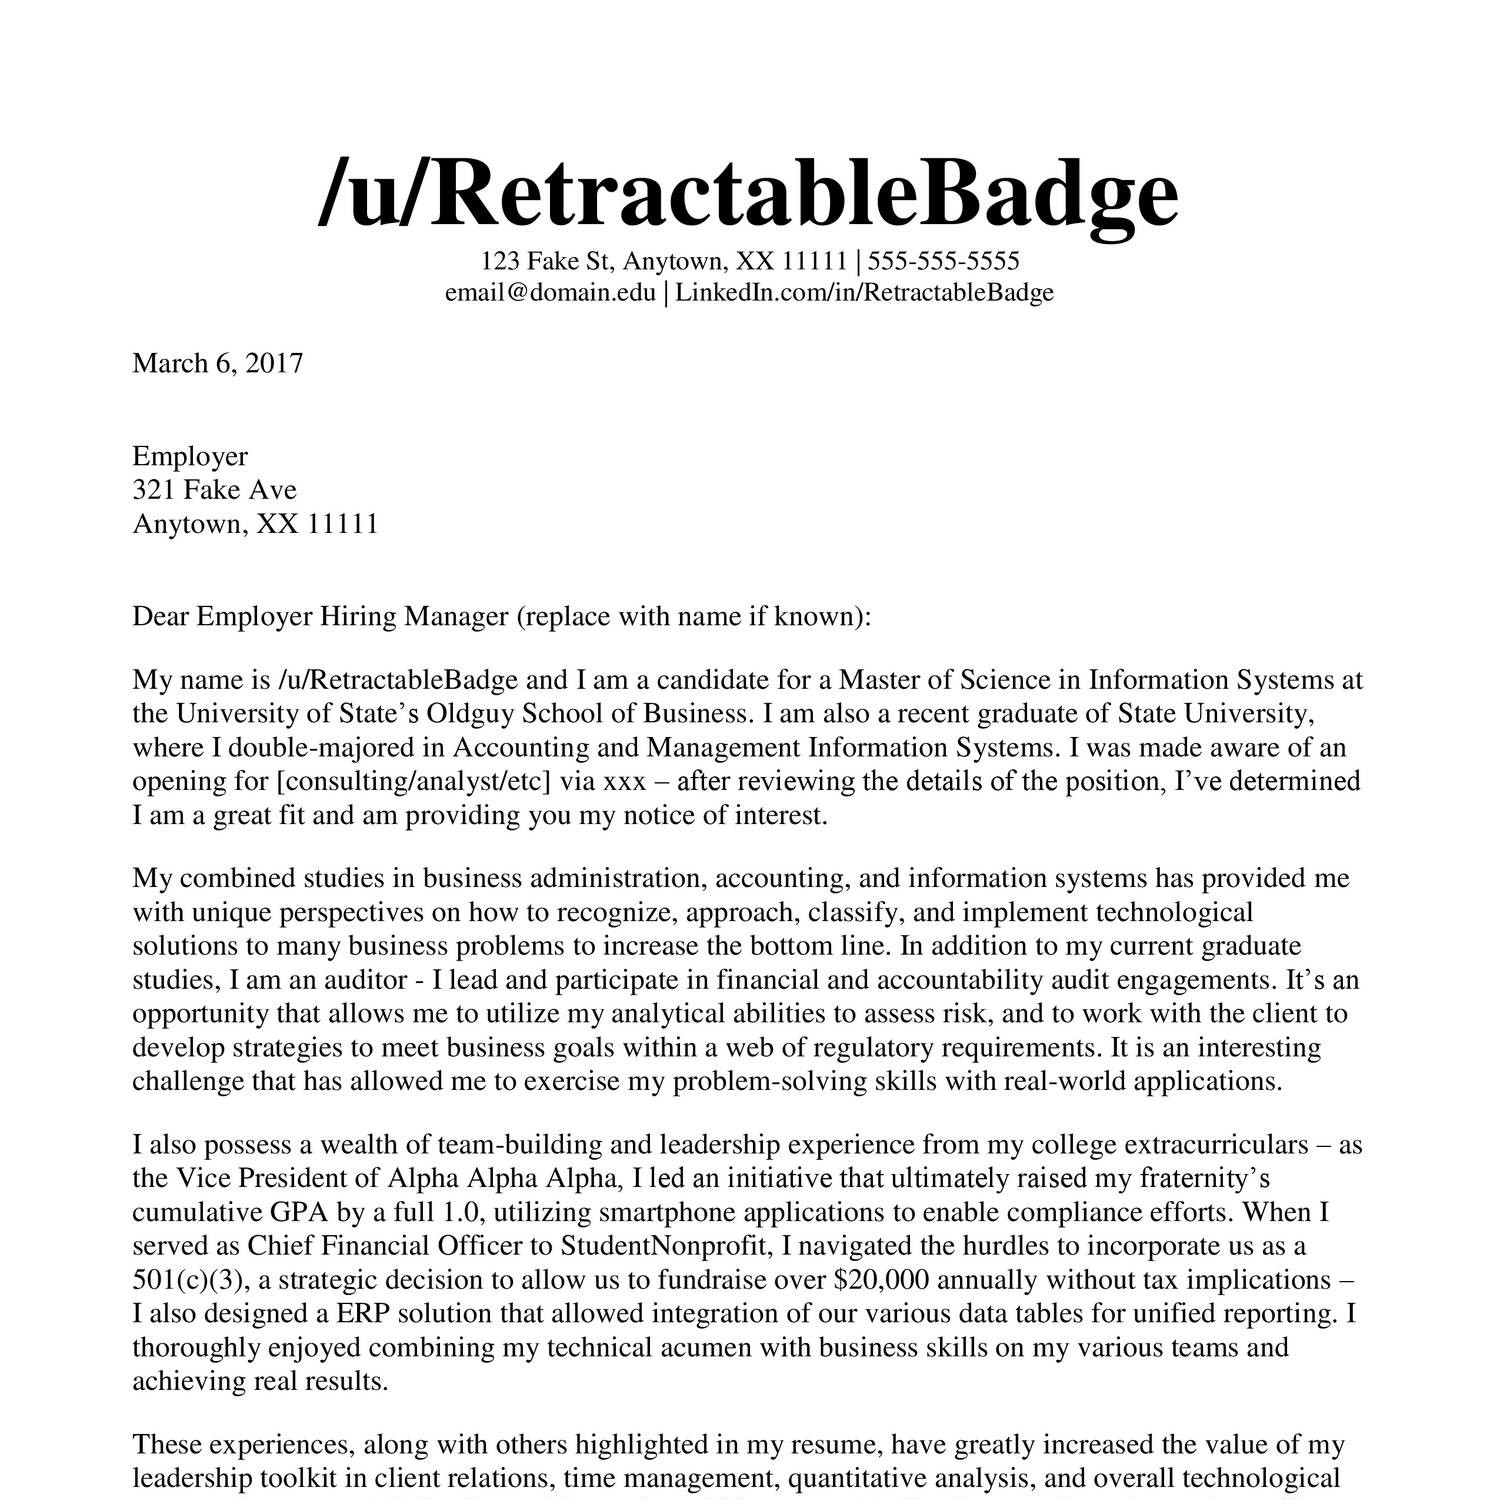 Cover Letter Reddit Cscareerquestions July 2021